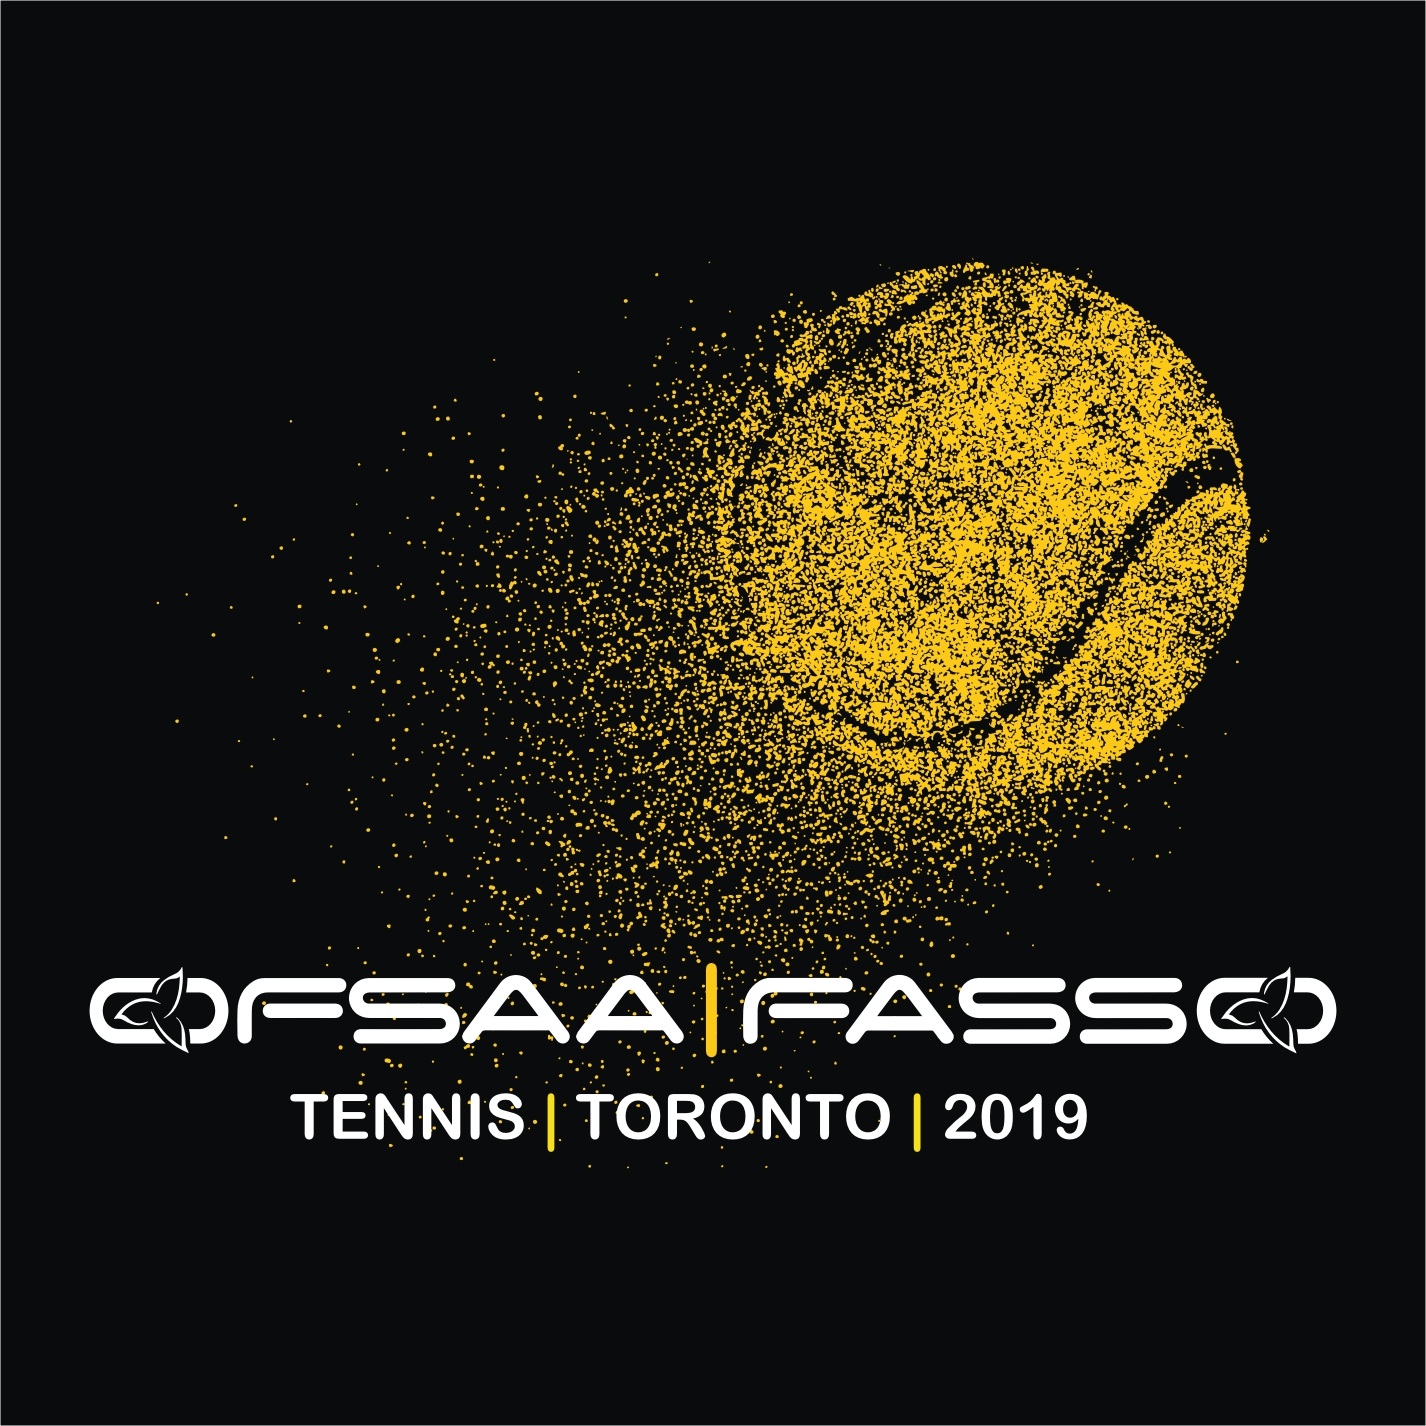 2019 Tennis black logo.jpg